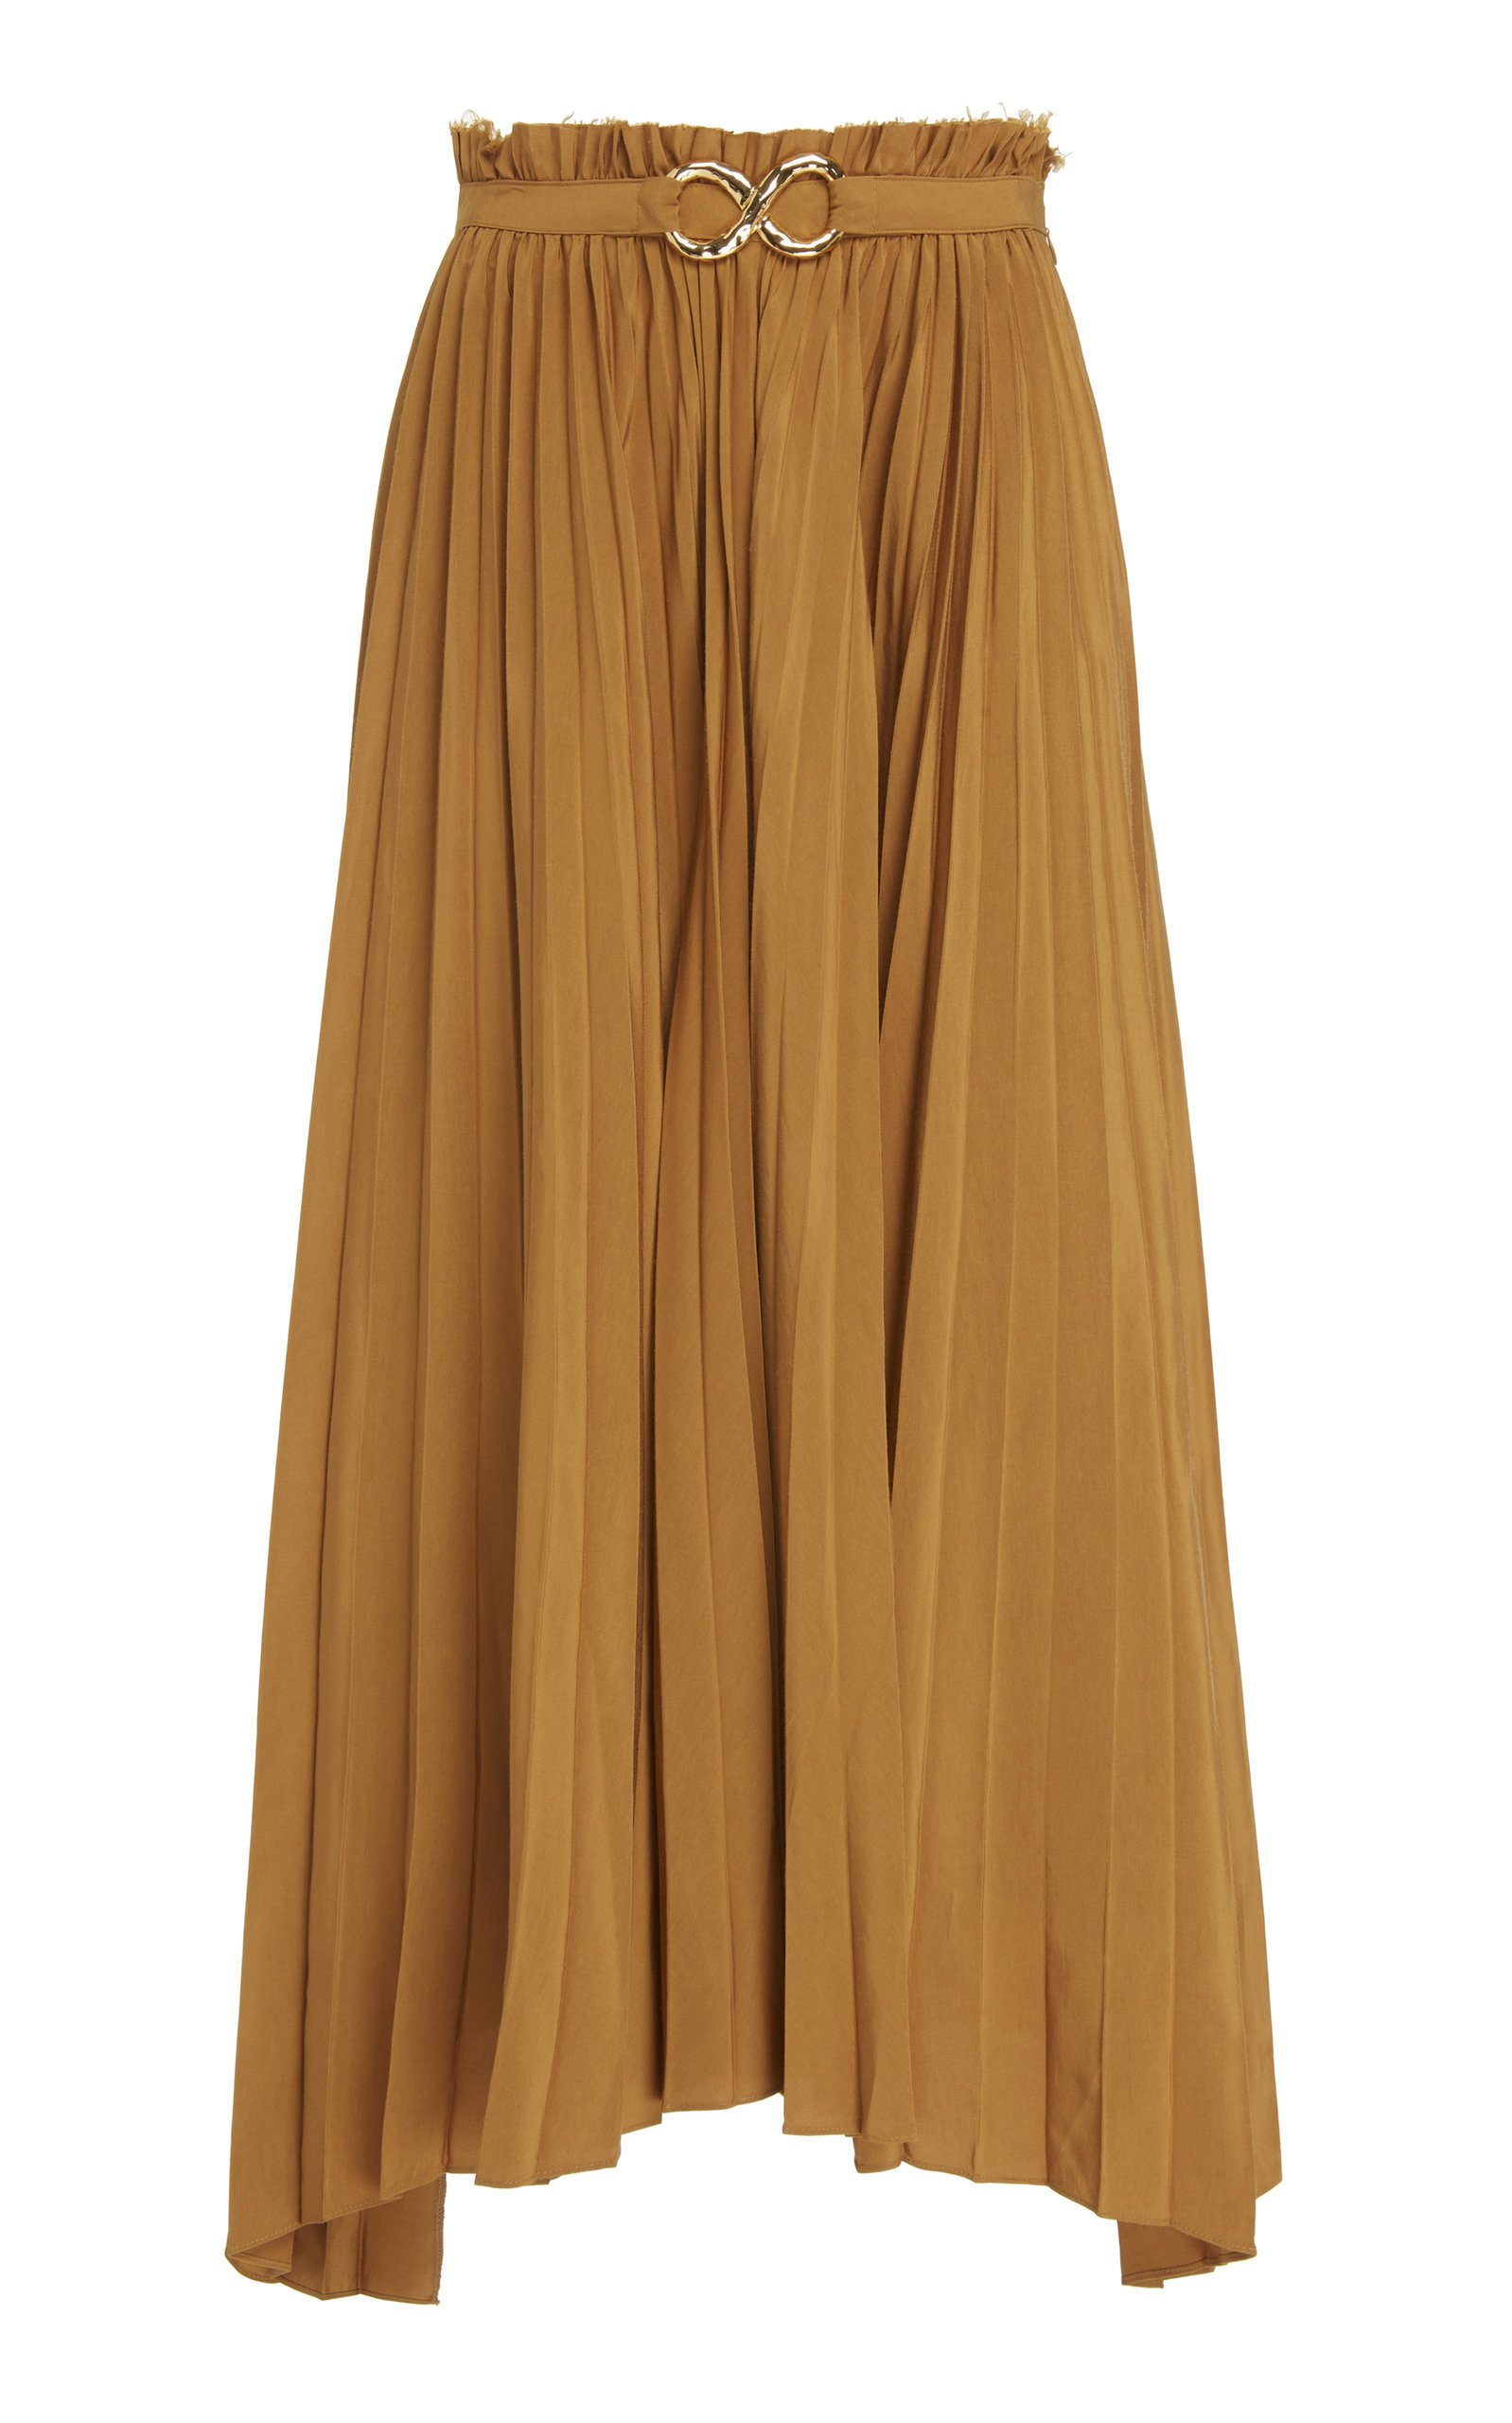 Rejina Pyo Kiera Pleated Satin Midi Skirt Size: 12